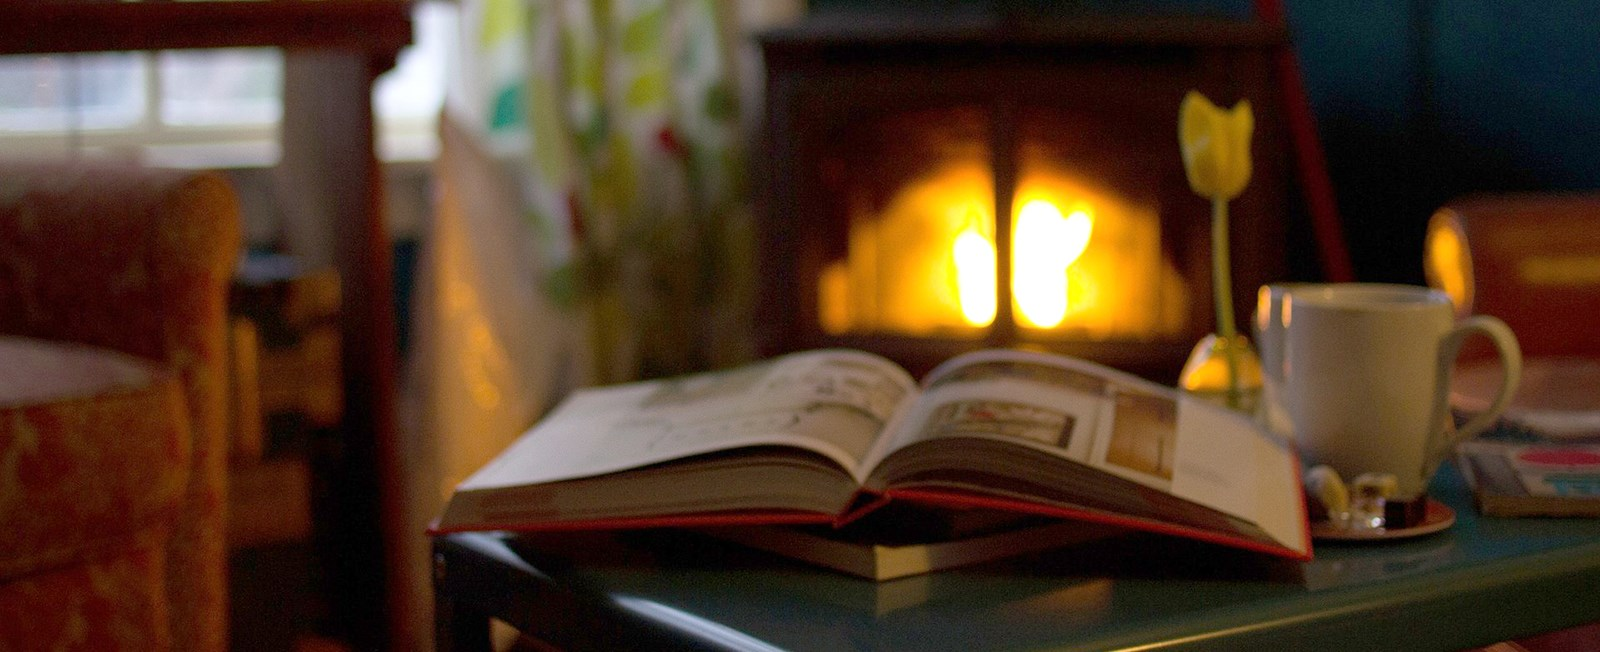 Whether it be a way to pass cold winter days or a companion on the beach—books are the way to go. We have many fantastic bookstores on the Cape & Islands that are worth a visit!